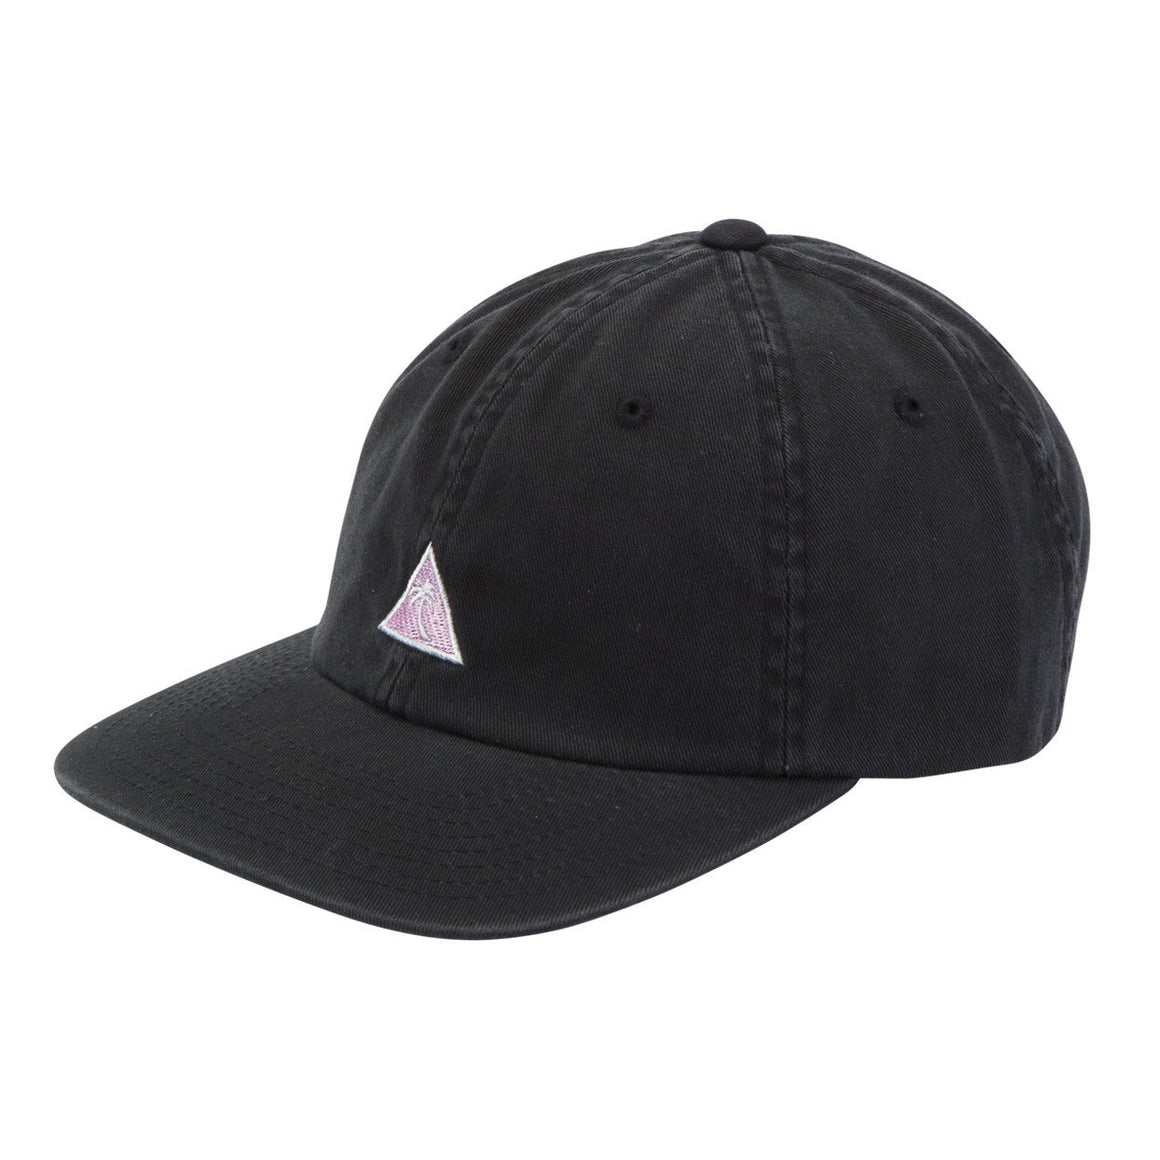 Caps -  Catch Surf - George 2 Hat - Black - Surf Ontario